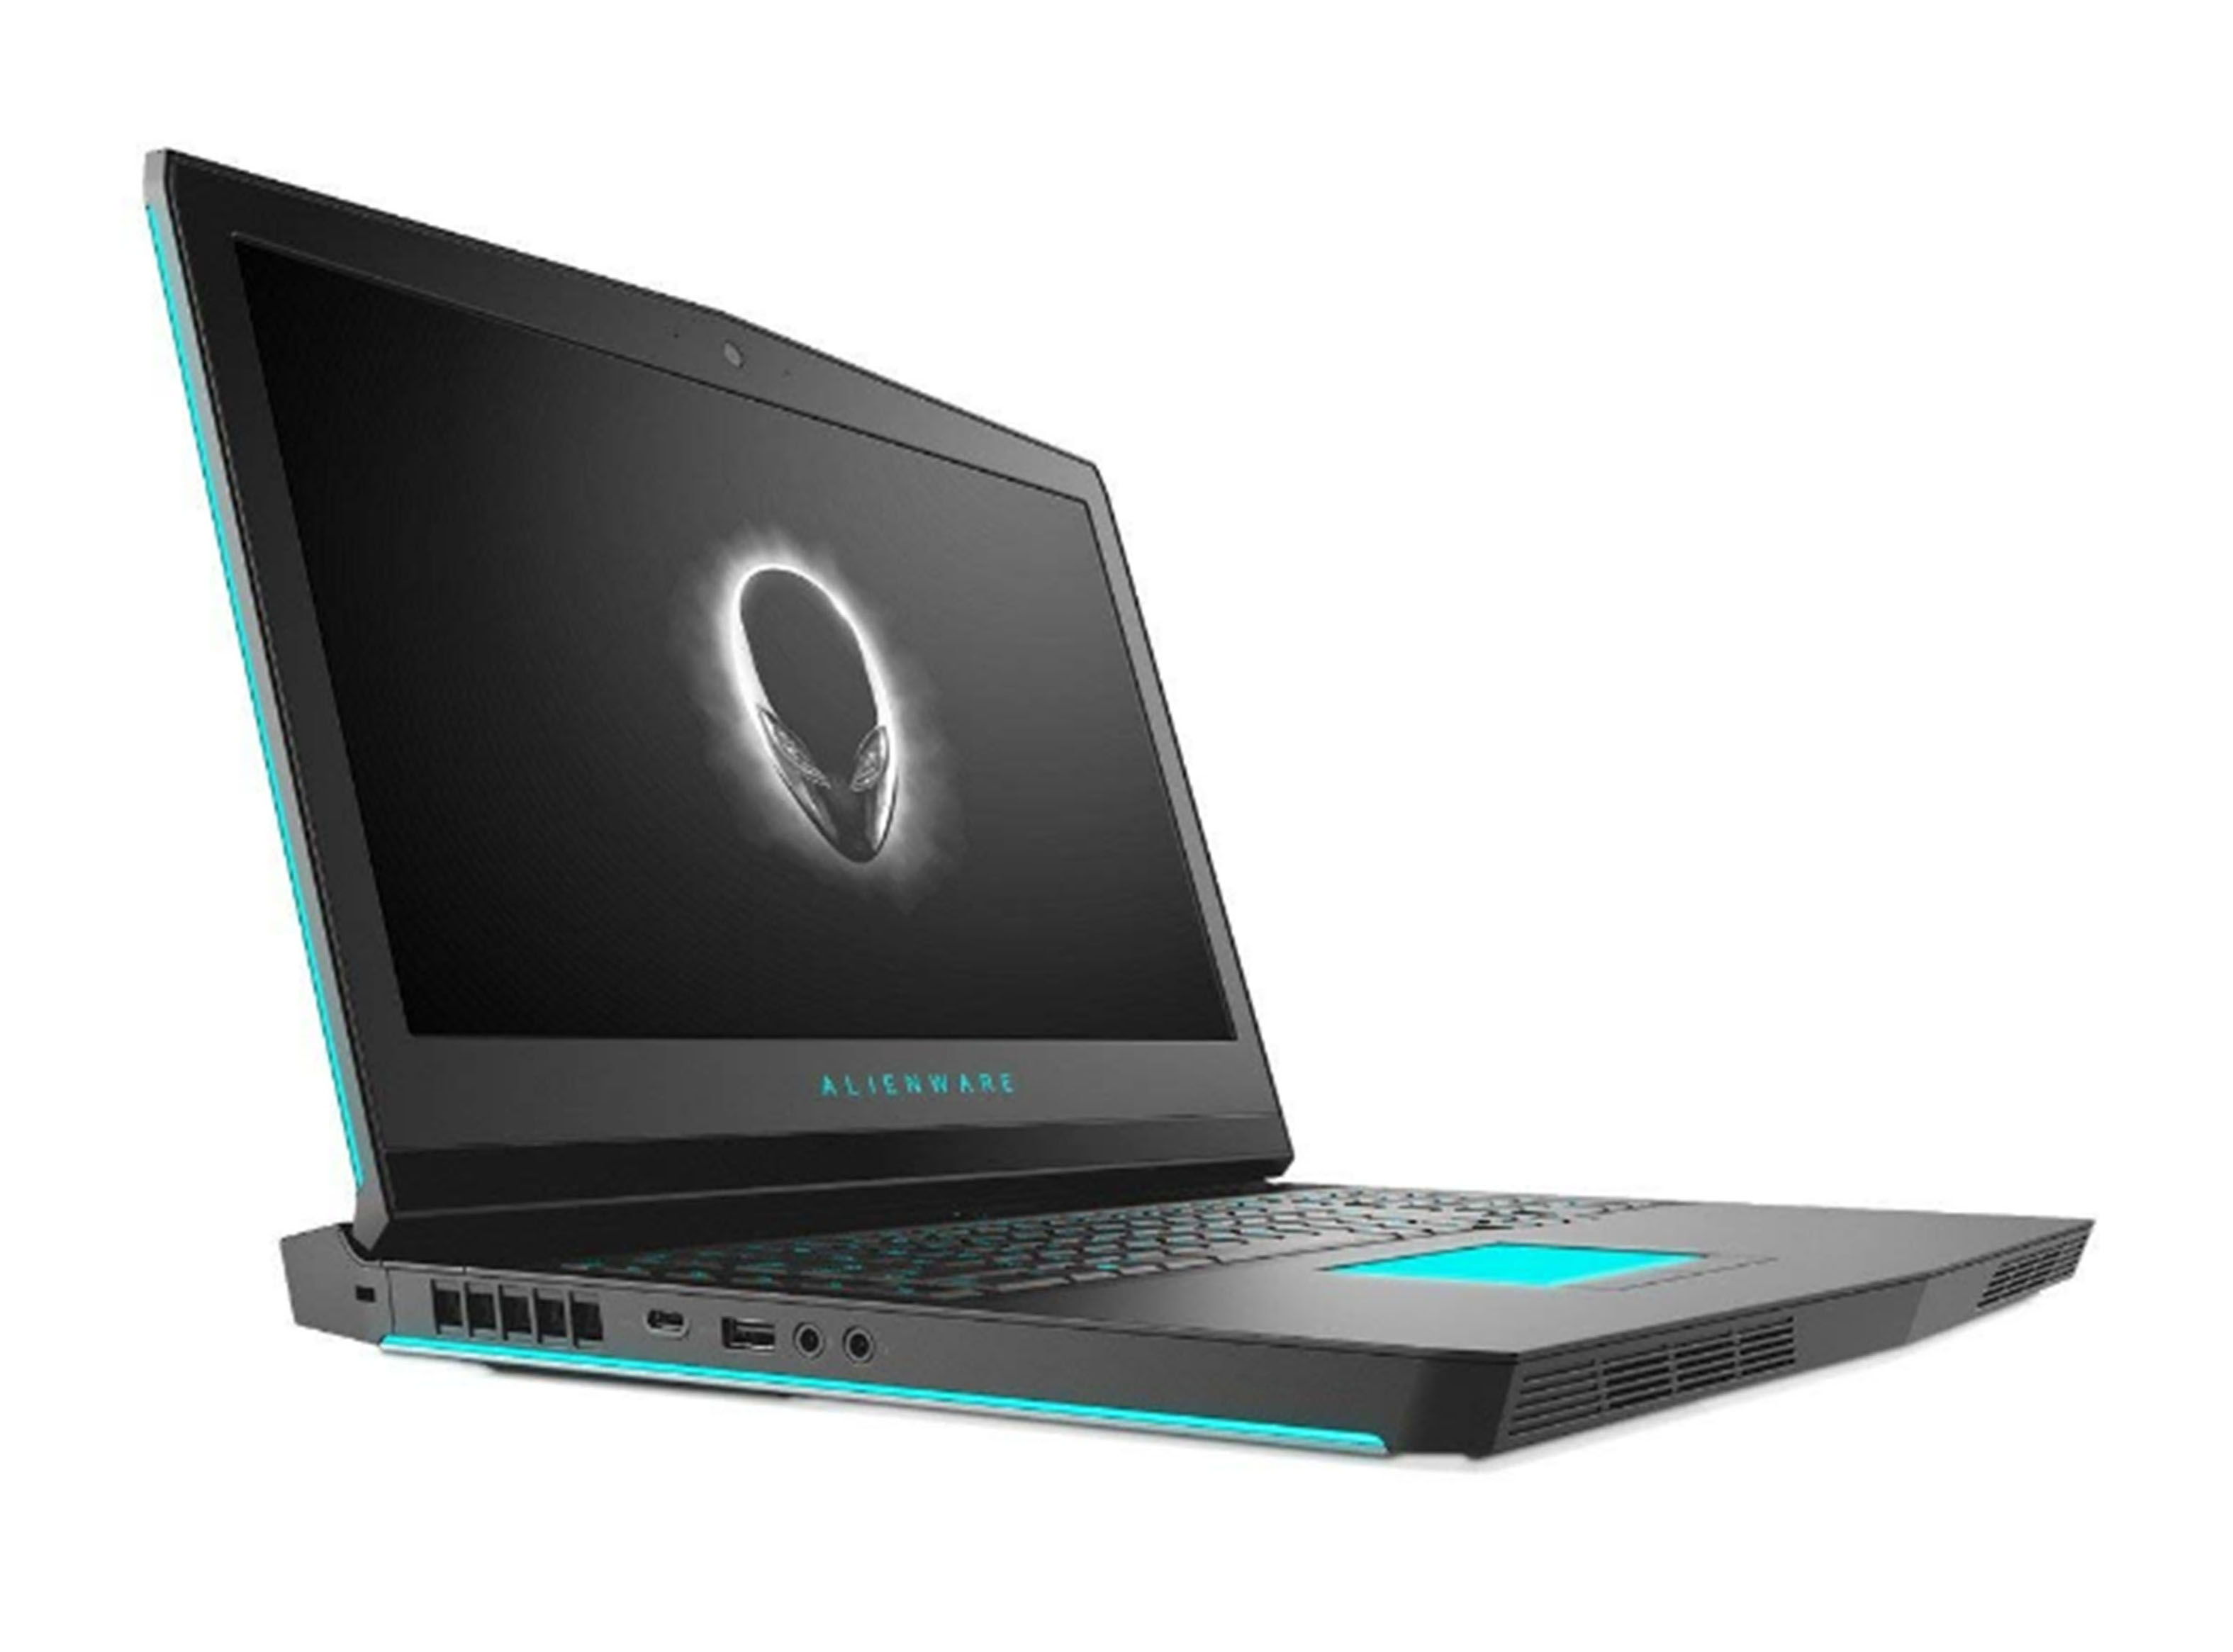 ALIENWARE NVIDIA GEFORCE SERIES DRIVER FOR WINDOWS